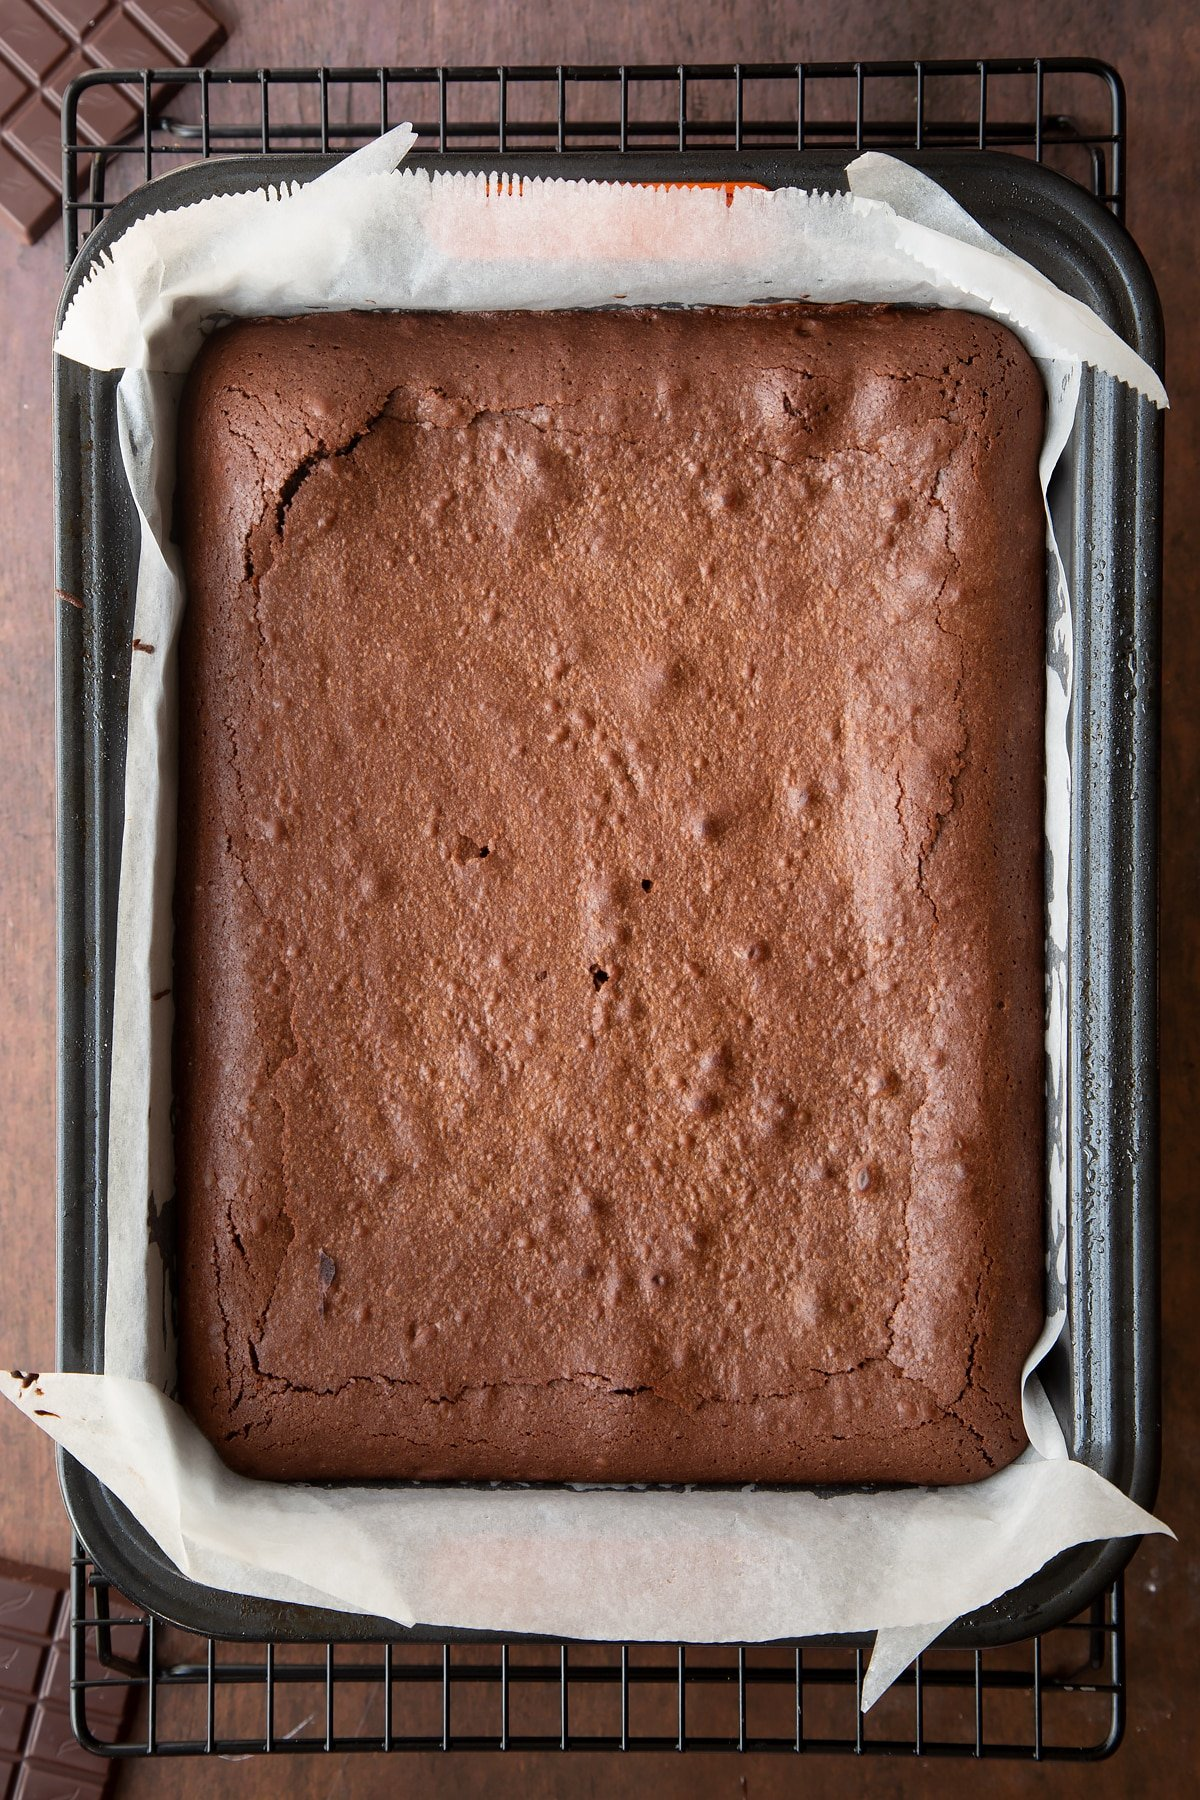 Freshly baked Halloween brownie in a lined tin.